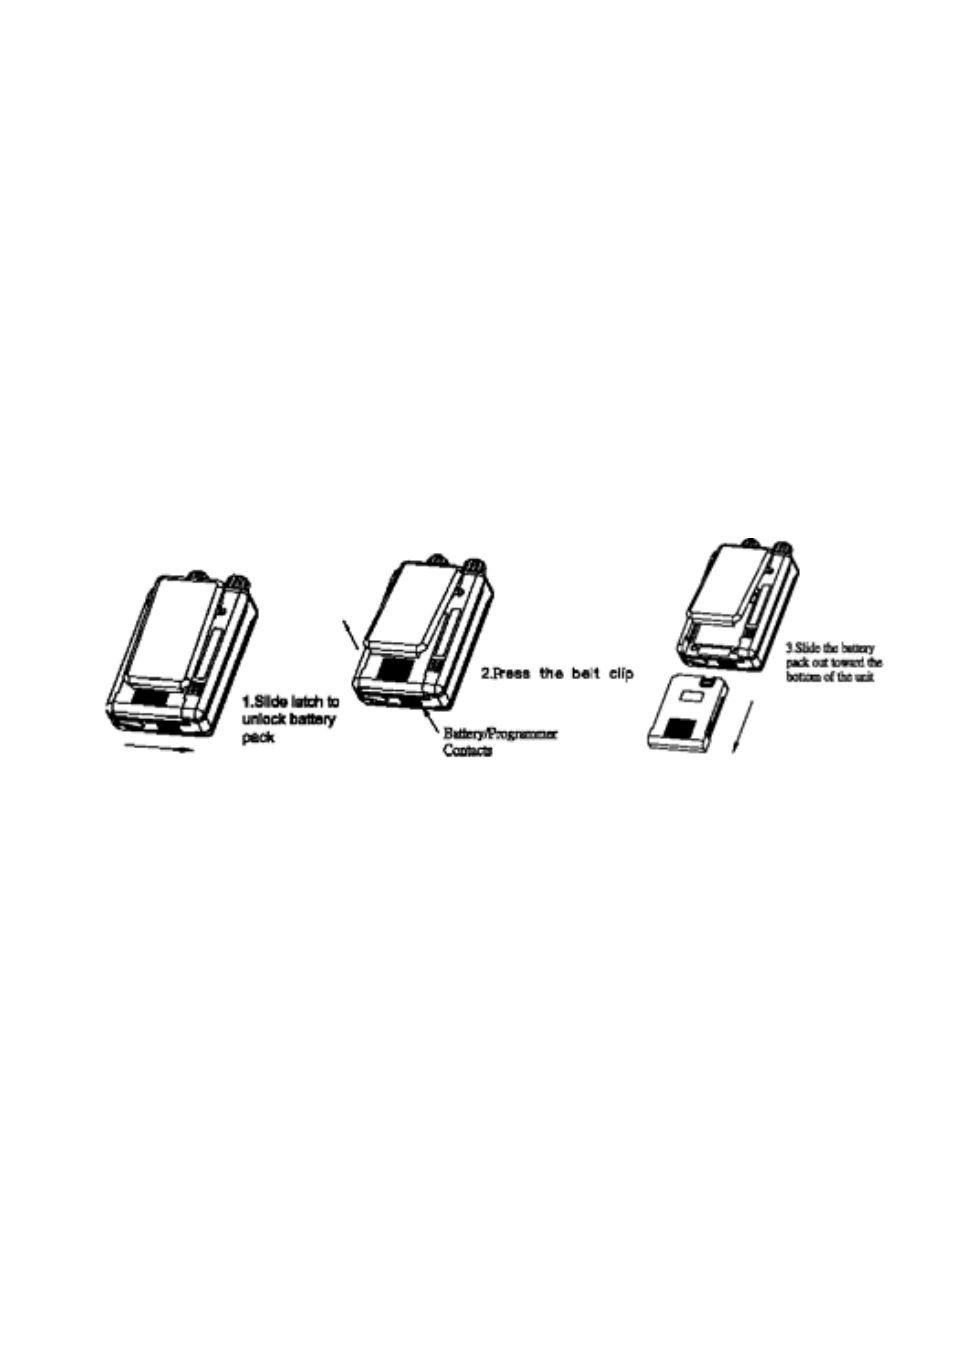 battery installation motorola minitor v user manual page 5 17 rh manualsdir com Minitor V Alert Tones Minitor V Accessories